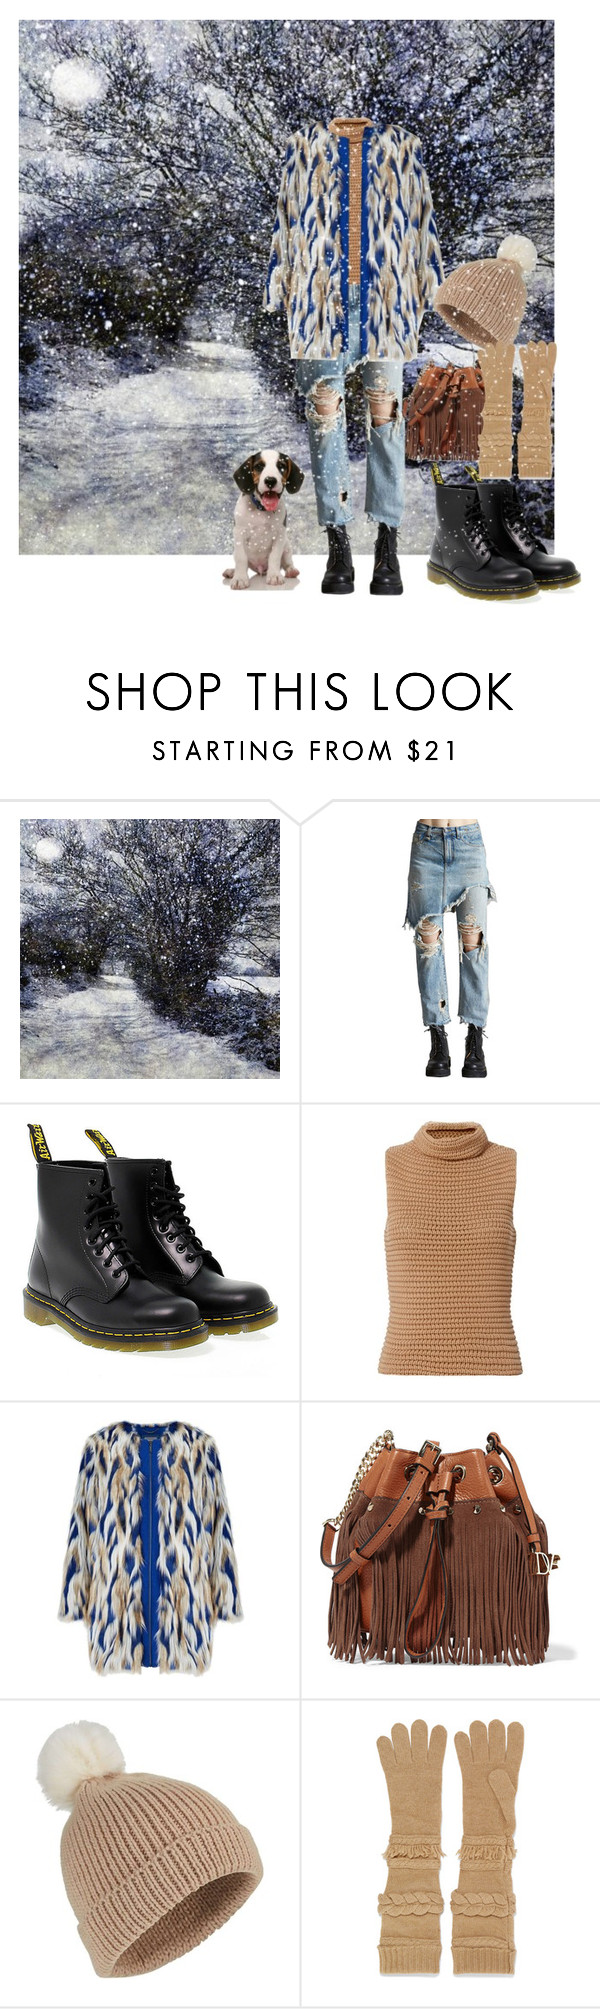 """""""Winer Walk"""" by christined1960 ❤ liked on Polyvore featuring R13, Dr. Martens, Exclusive for Intermix, Diane Von Furstenberg, Miss Selfridge and Agnona"""